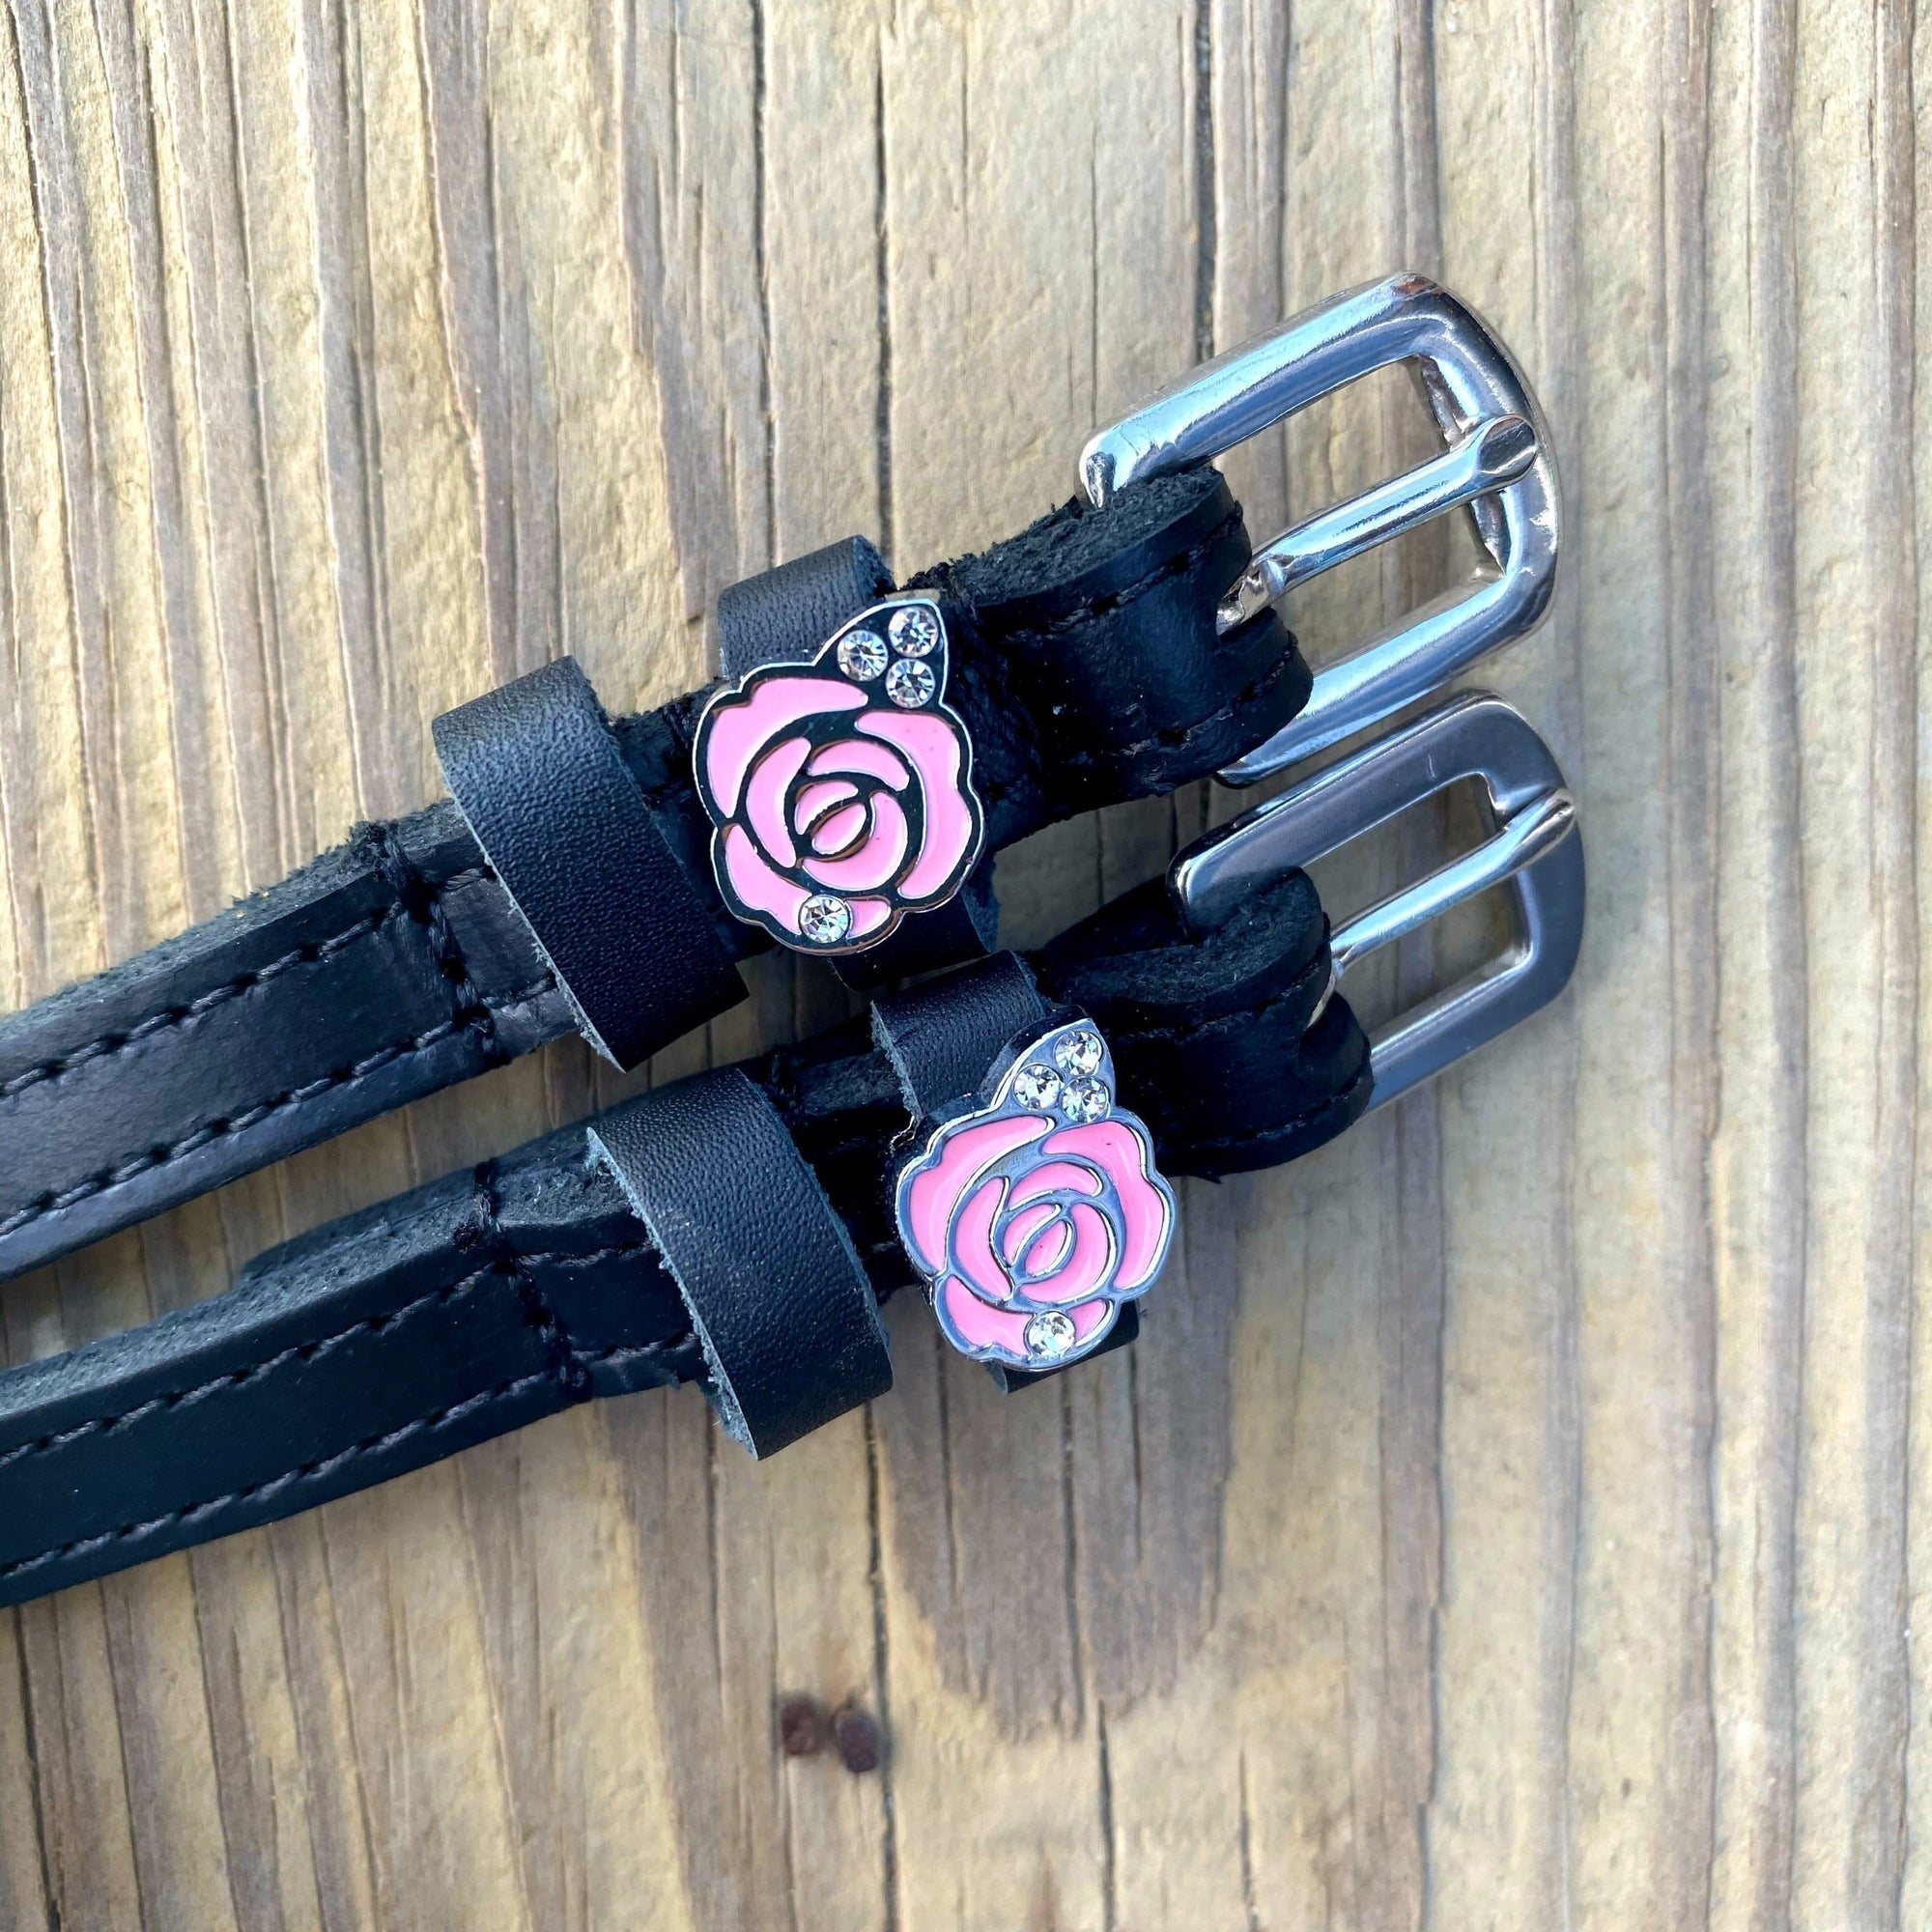 ManeJane Black Spur Straps Pink Roses equestrian boot socks boot socks thin socks riding socks pattern socks tall socks funny socks knee high socks horse socks horse show socks